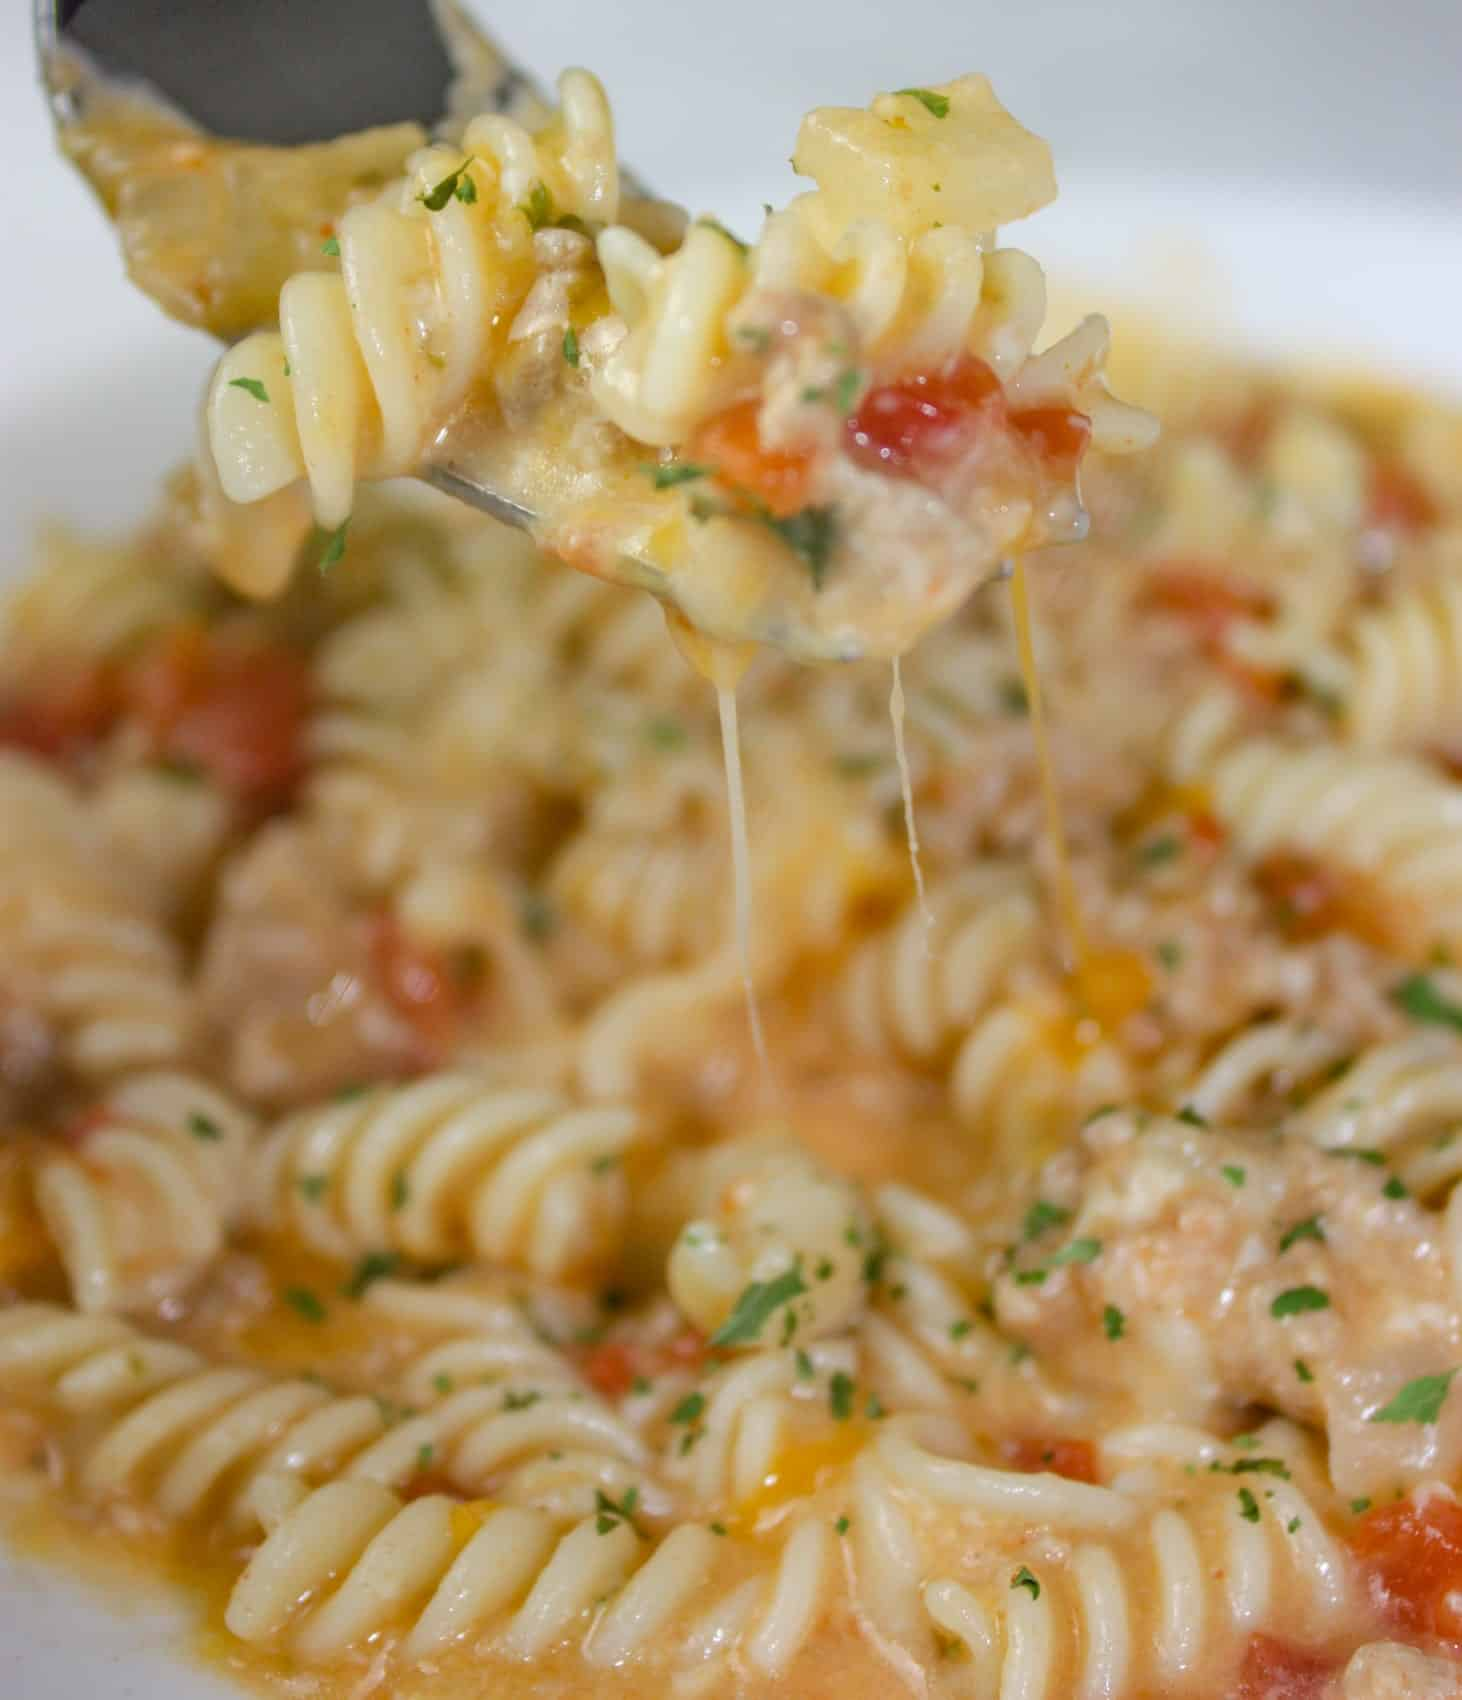 Instant Pot Cheesy Pasta and Turkey is an easy and delicious one pot pasta dish smothered in a creamy cheese sauce.